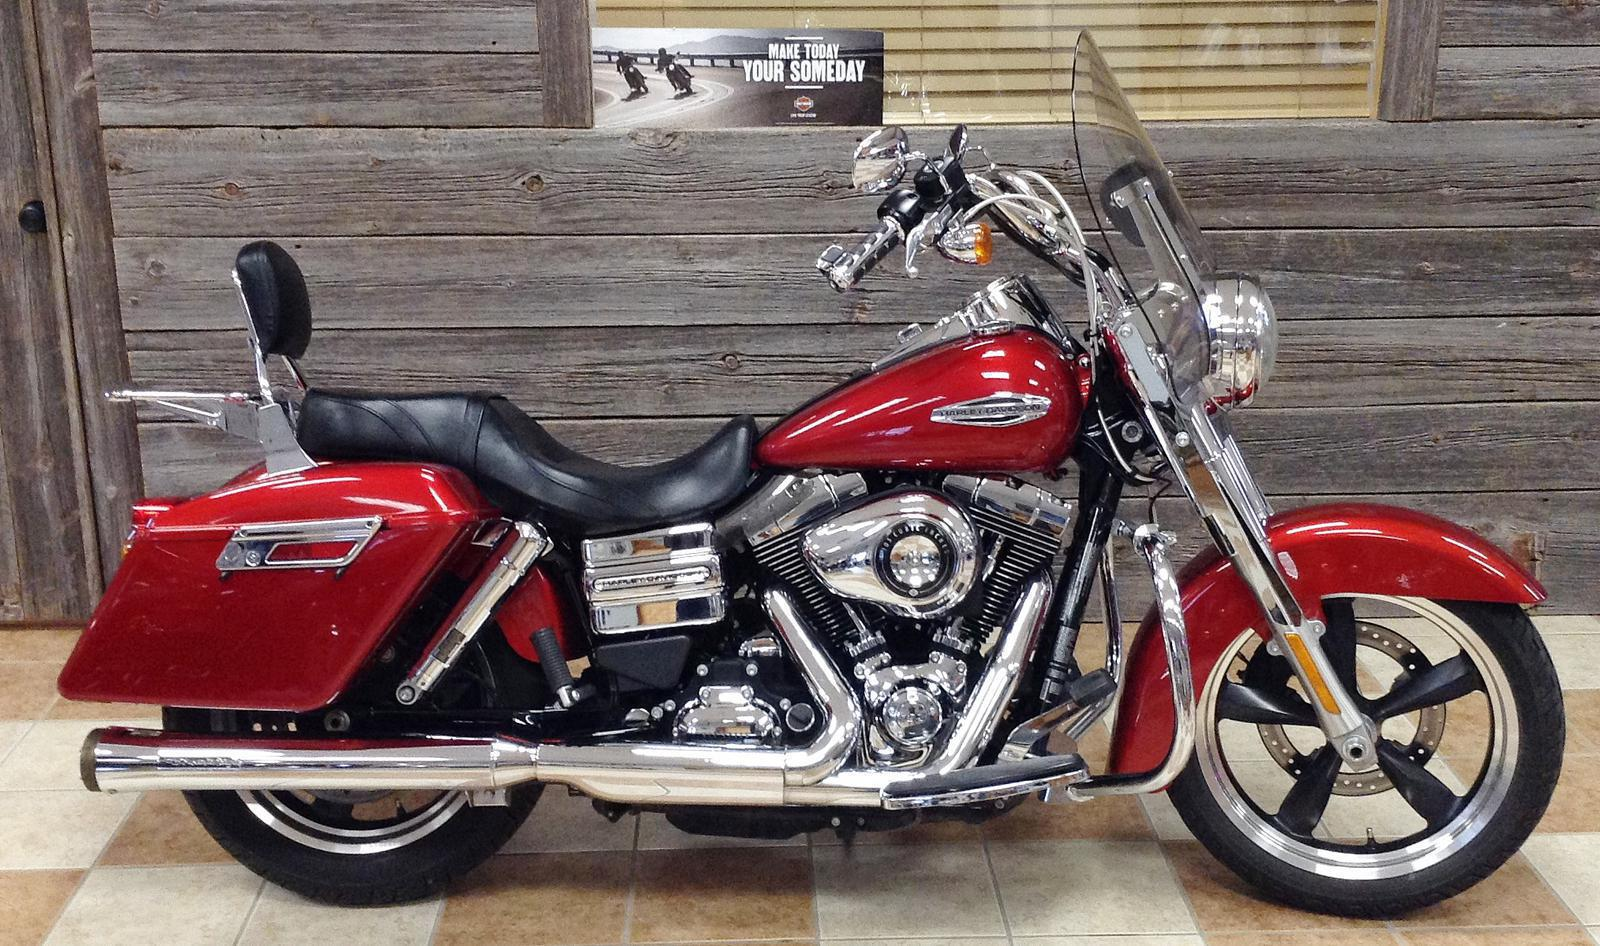 2012 Harley Davidson Fld Switchback Single Color For Sale In Red Starting At949500 Docs